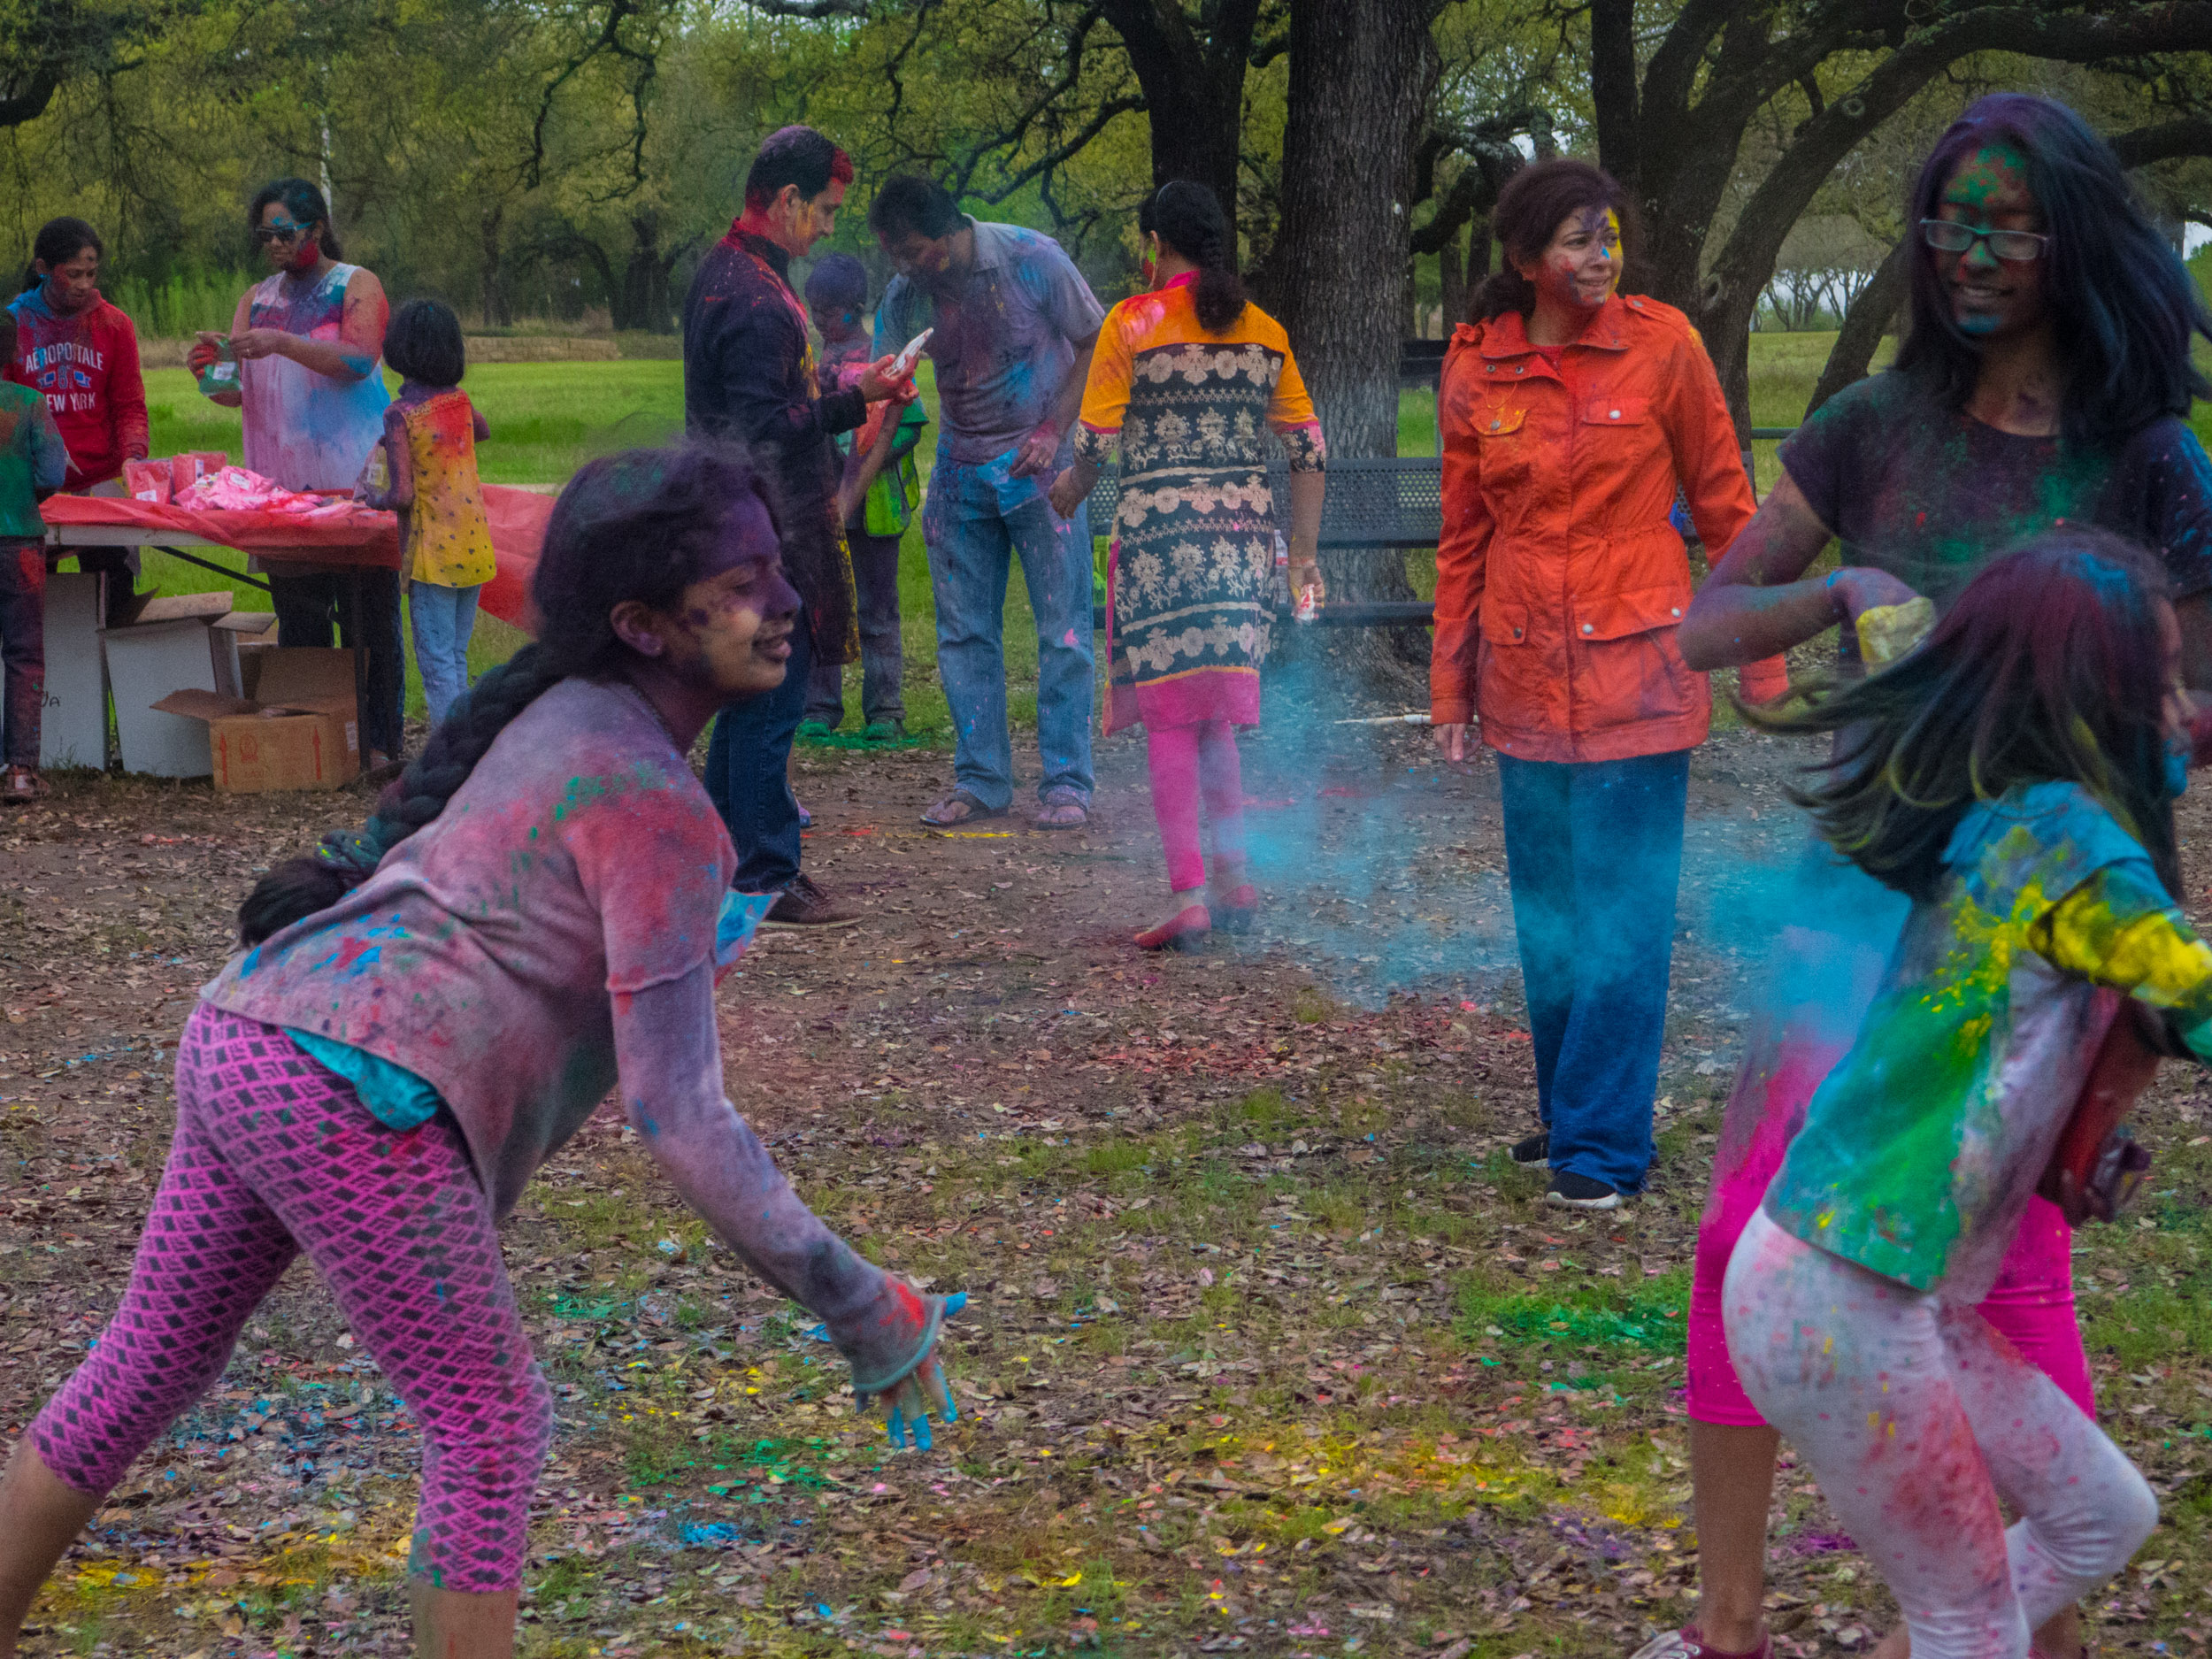 Holi celebrations at Radha Madhav Dham